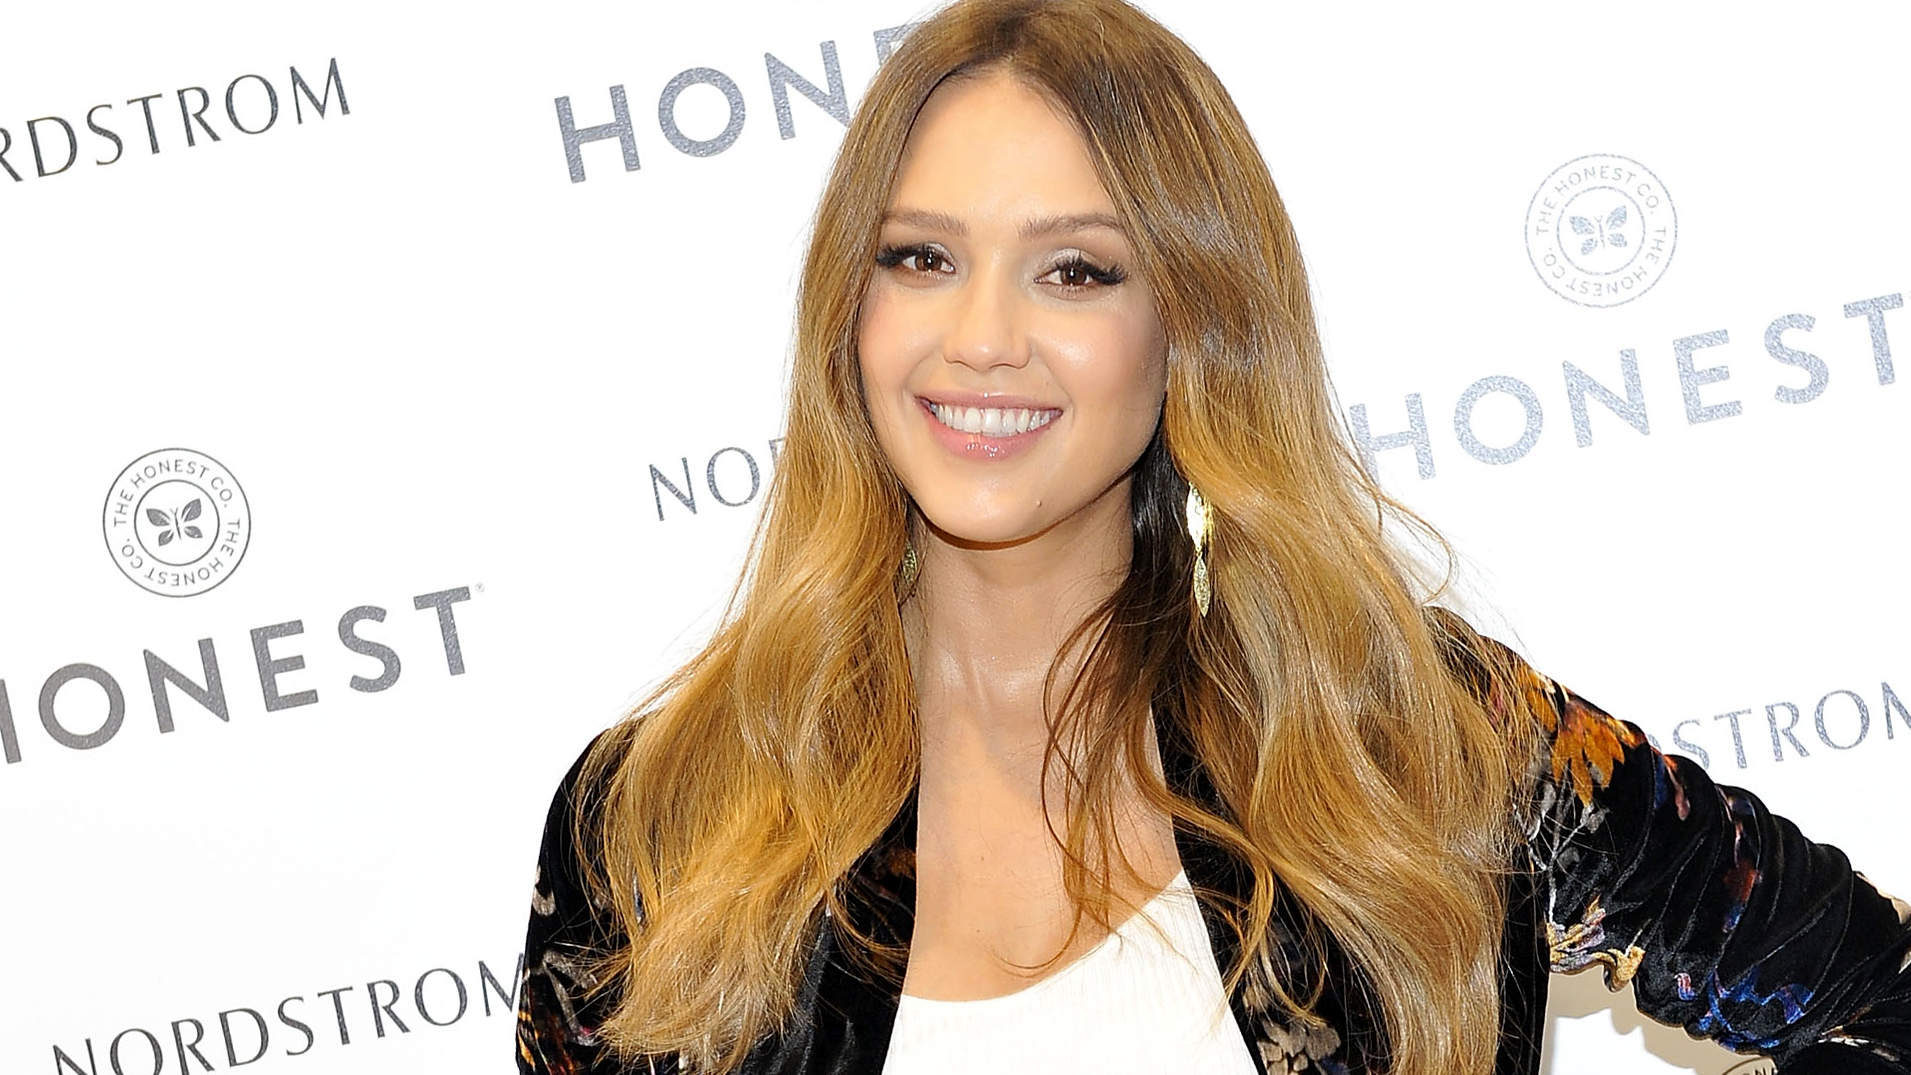 Jessica Alba Swears By These 5 Beauty Products for Detoxing Her Skin